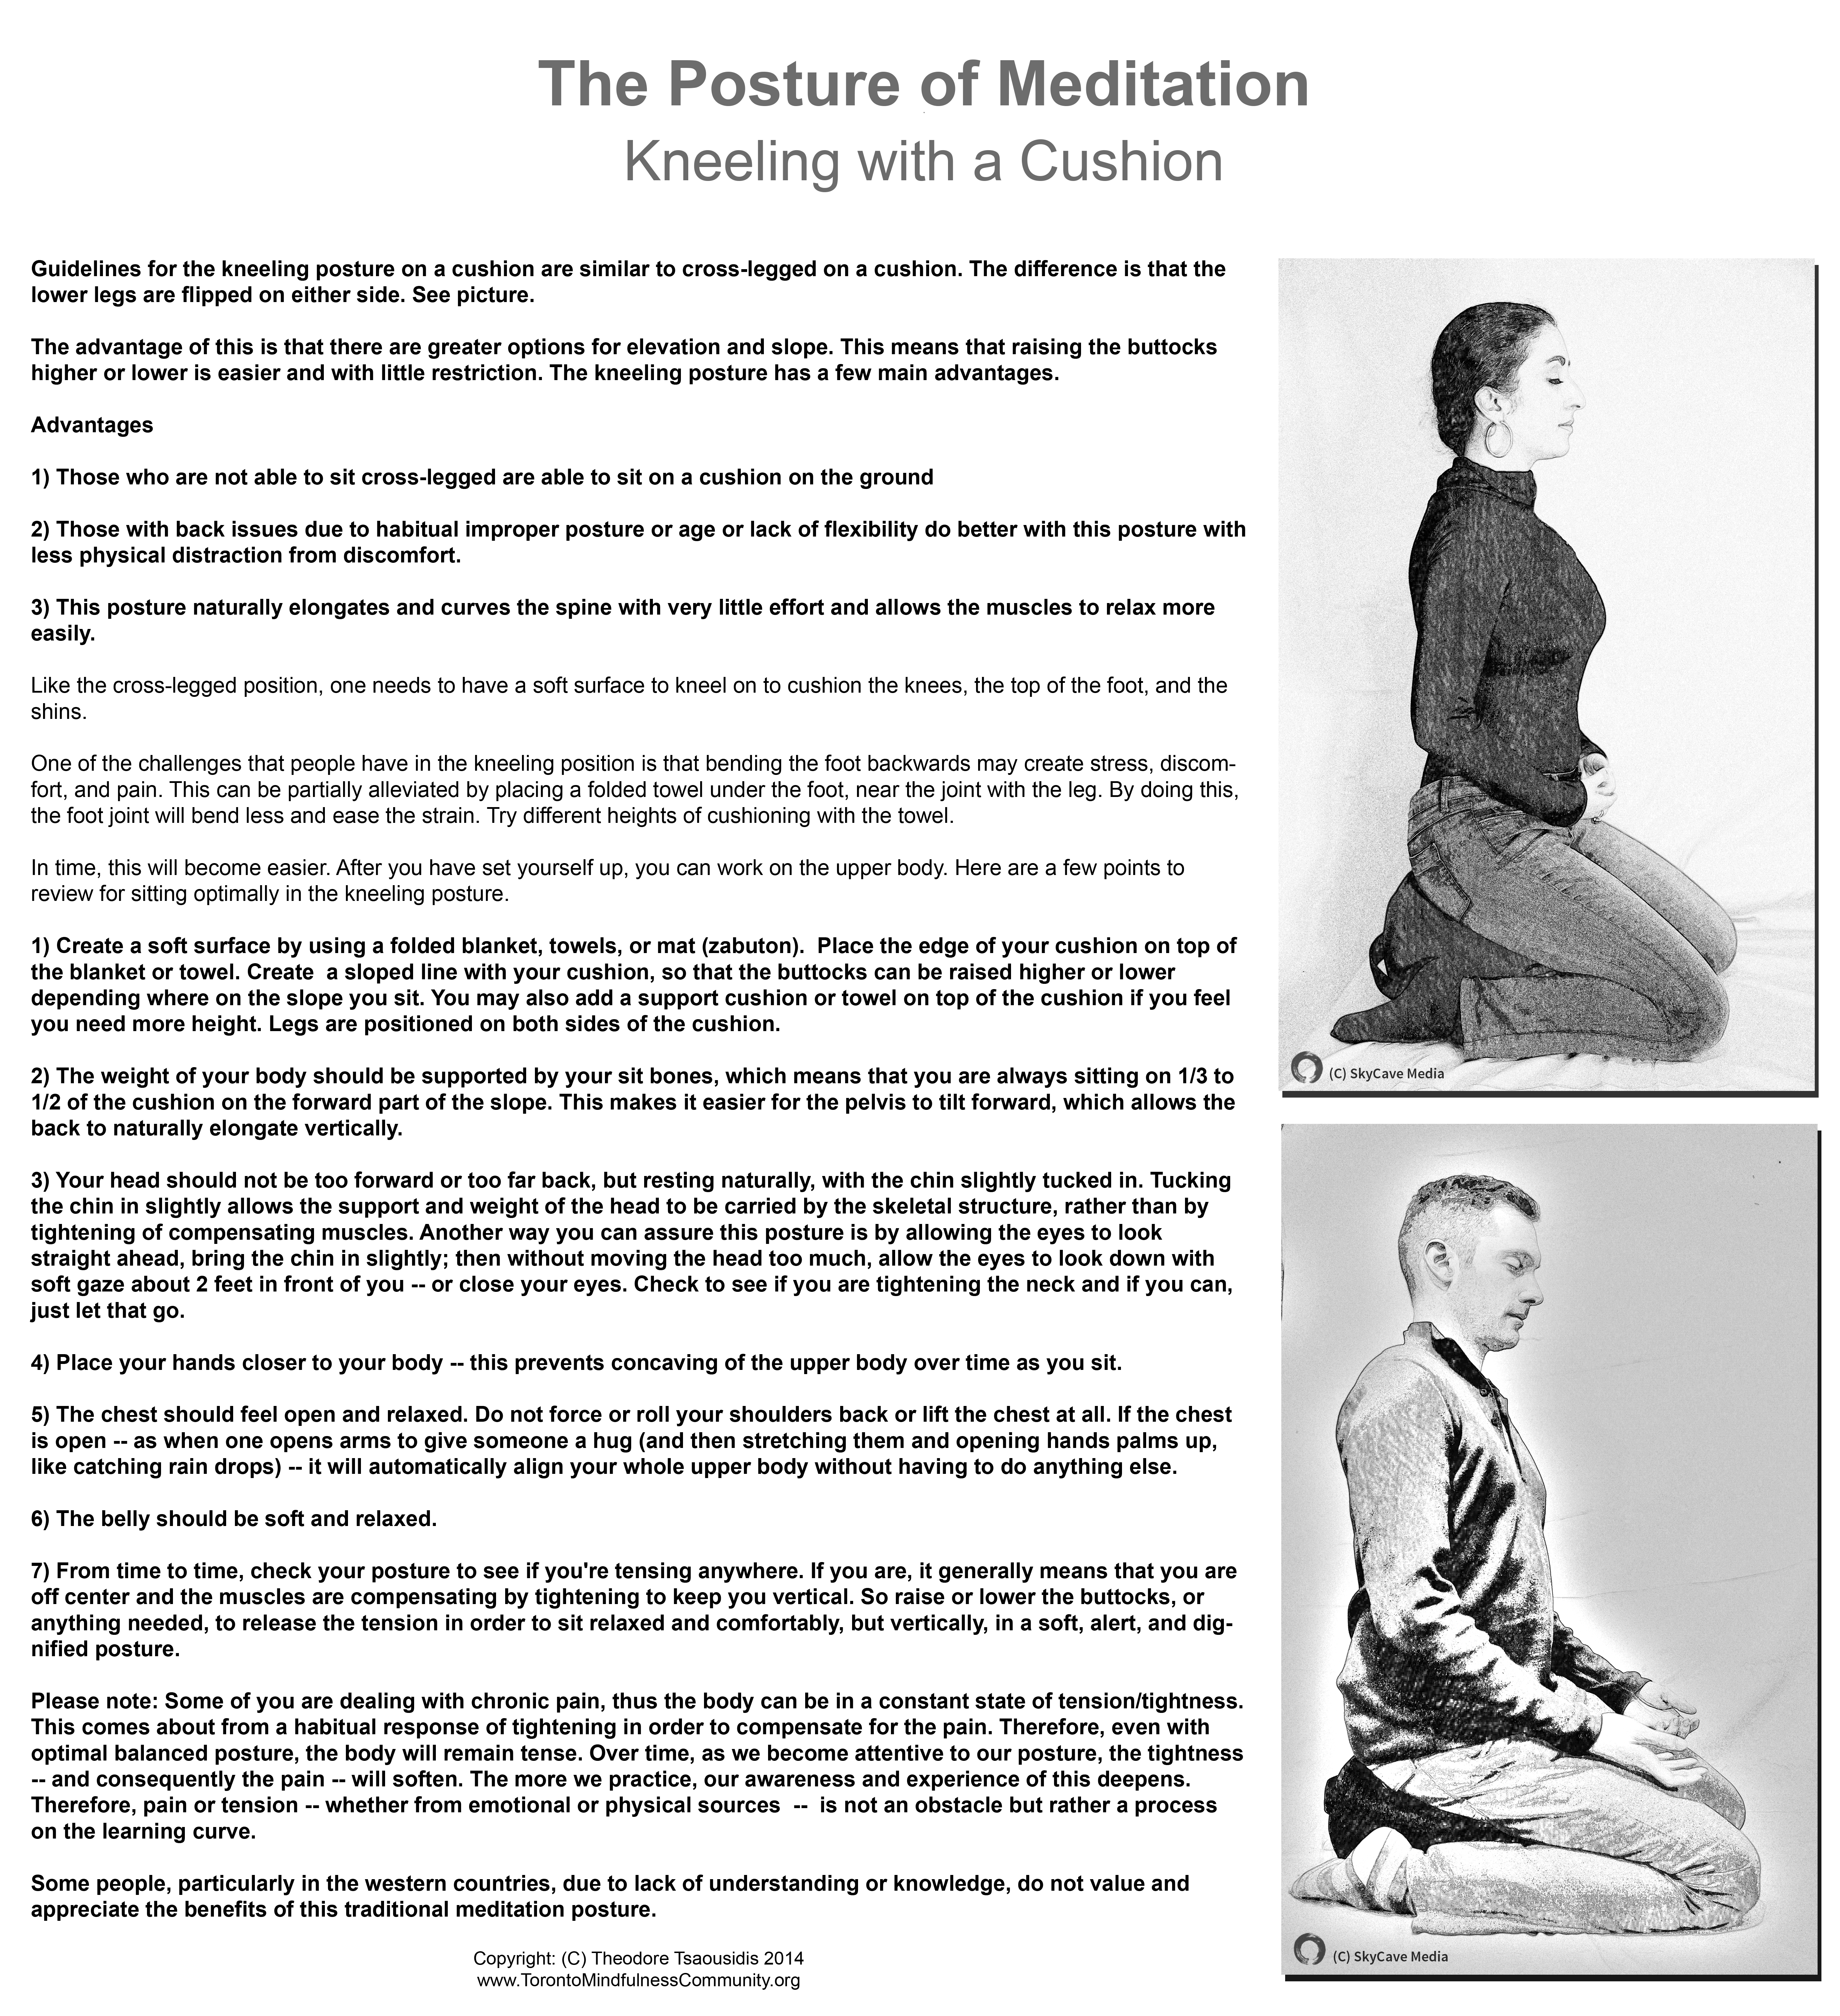 The Posture Of Meditation: Kneeling With A Cushion